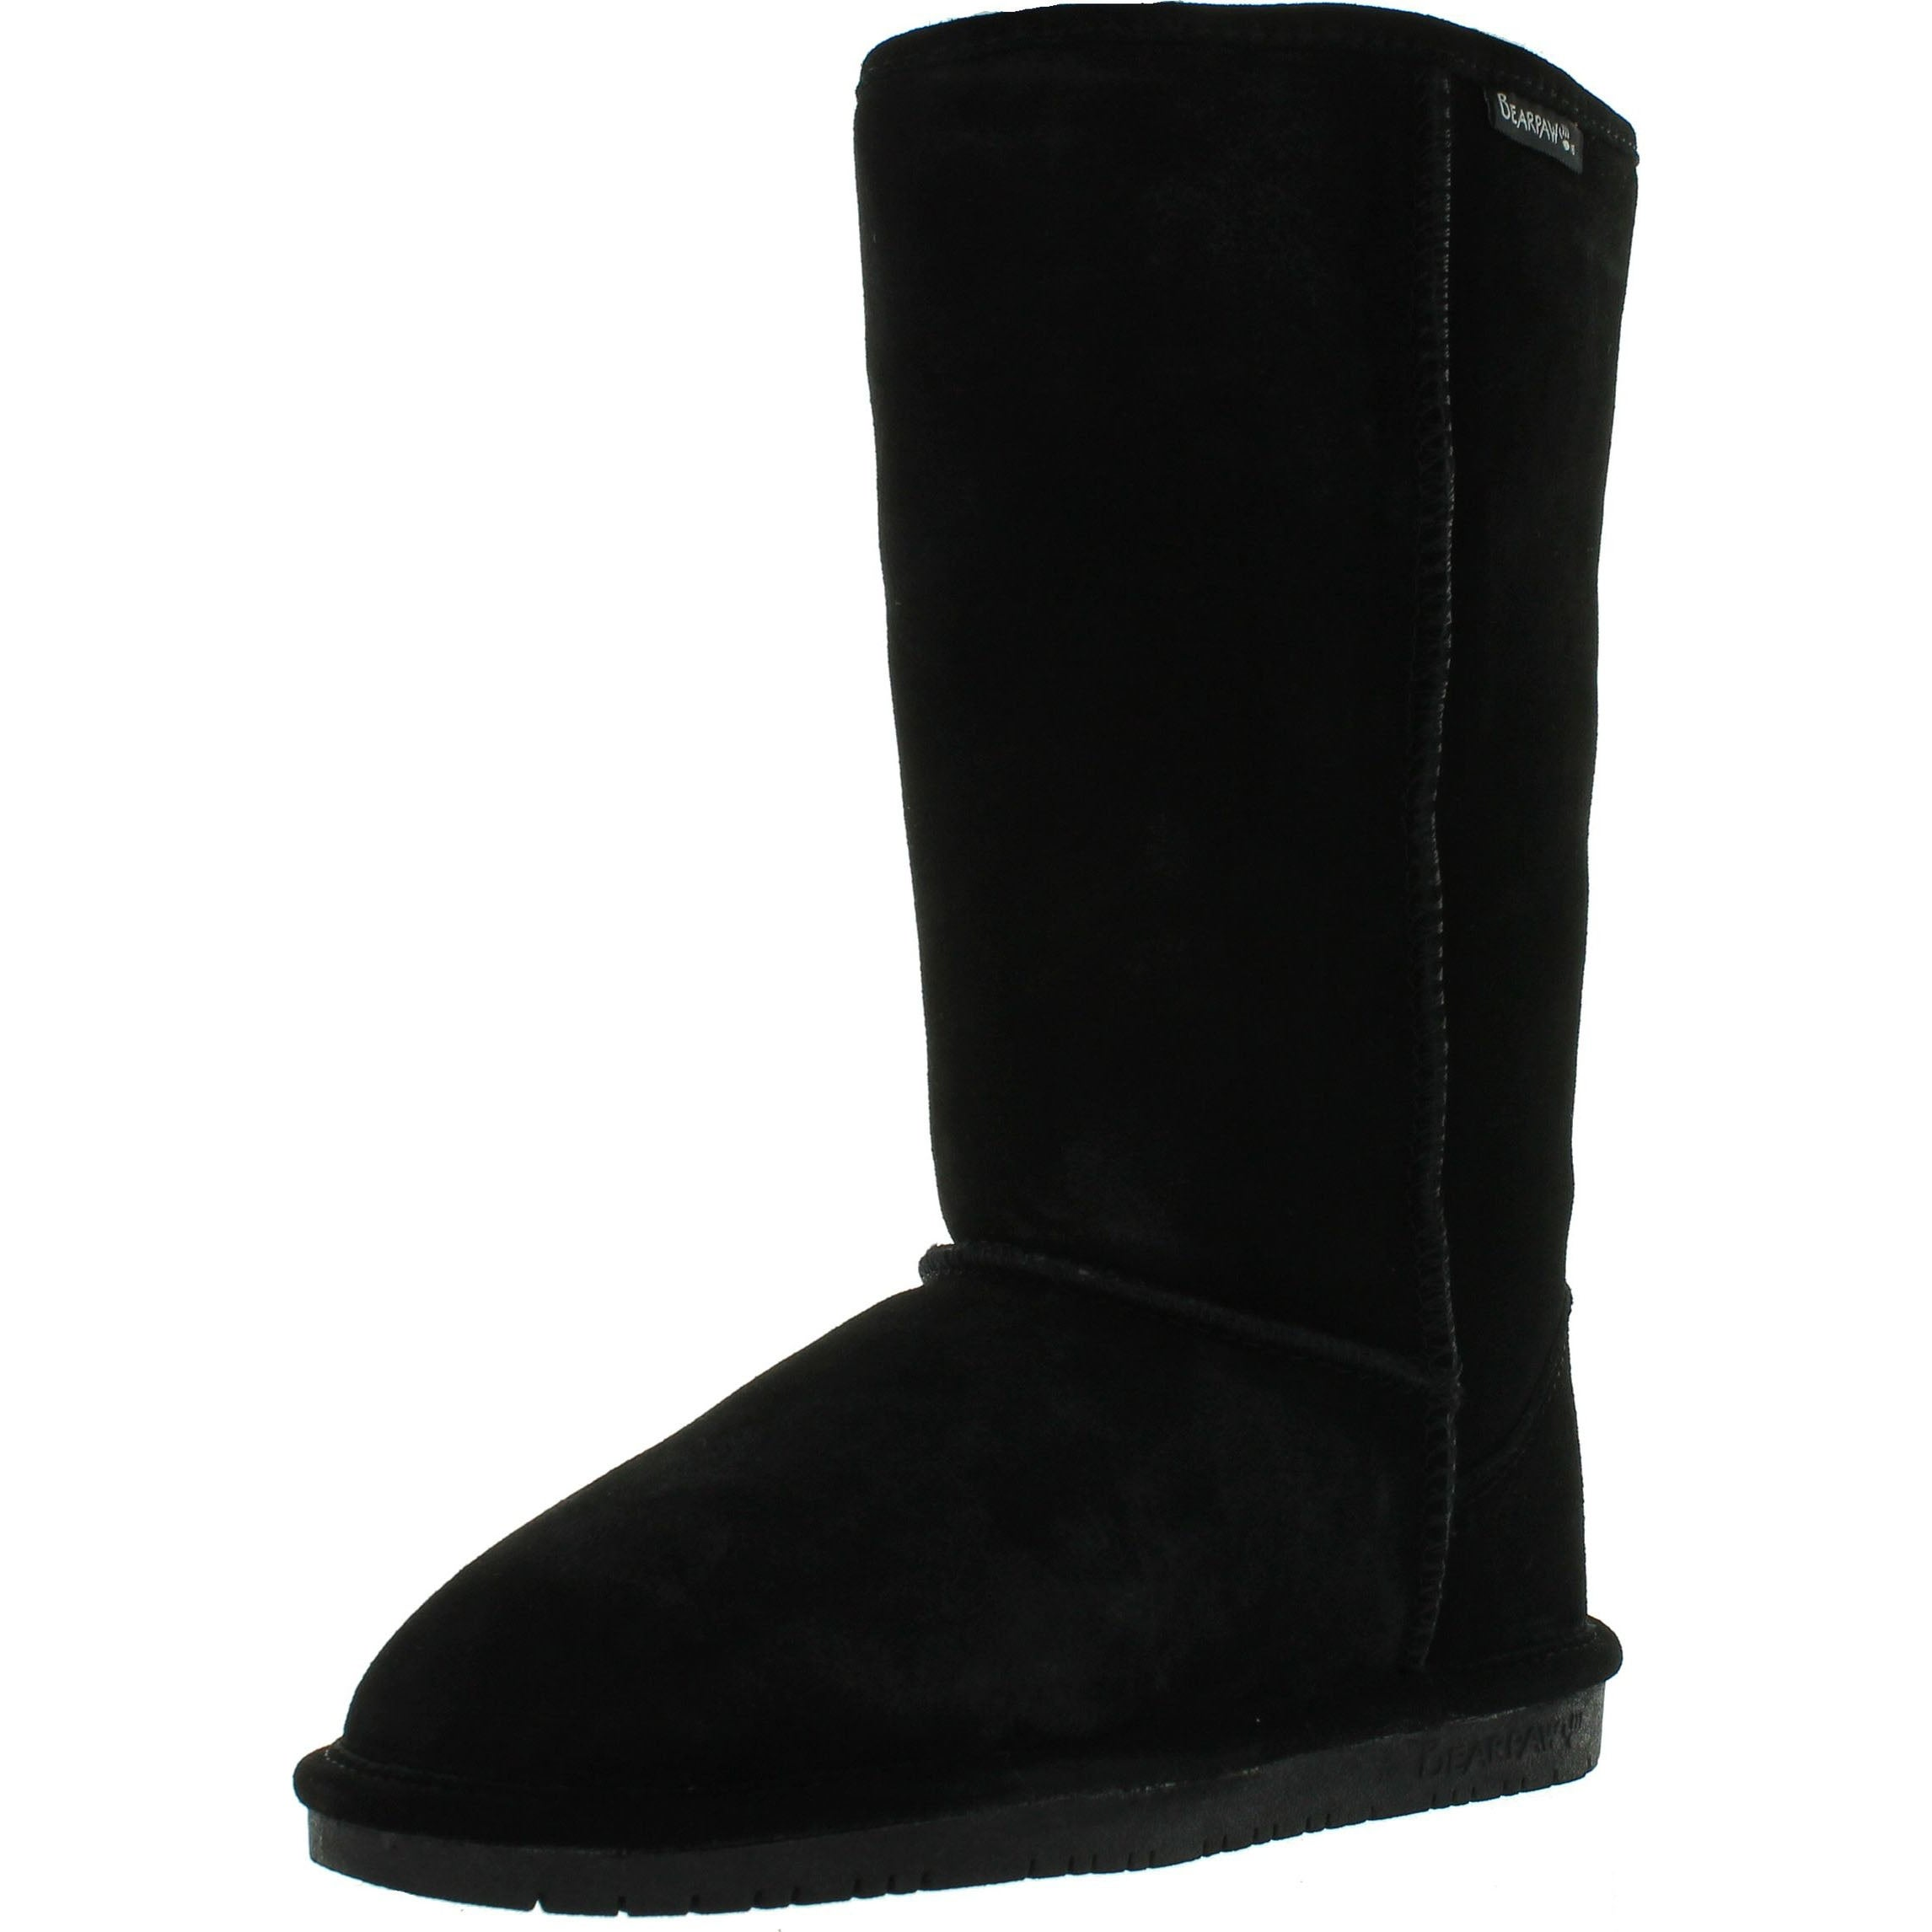 Bearpaw Women's 612W Emma Tall Suede Boots - Free Shipping Today -  Overstock.com - 20893678